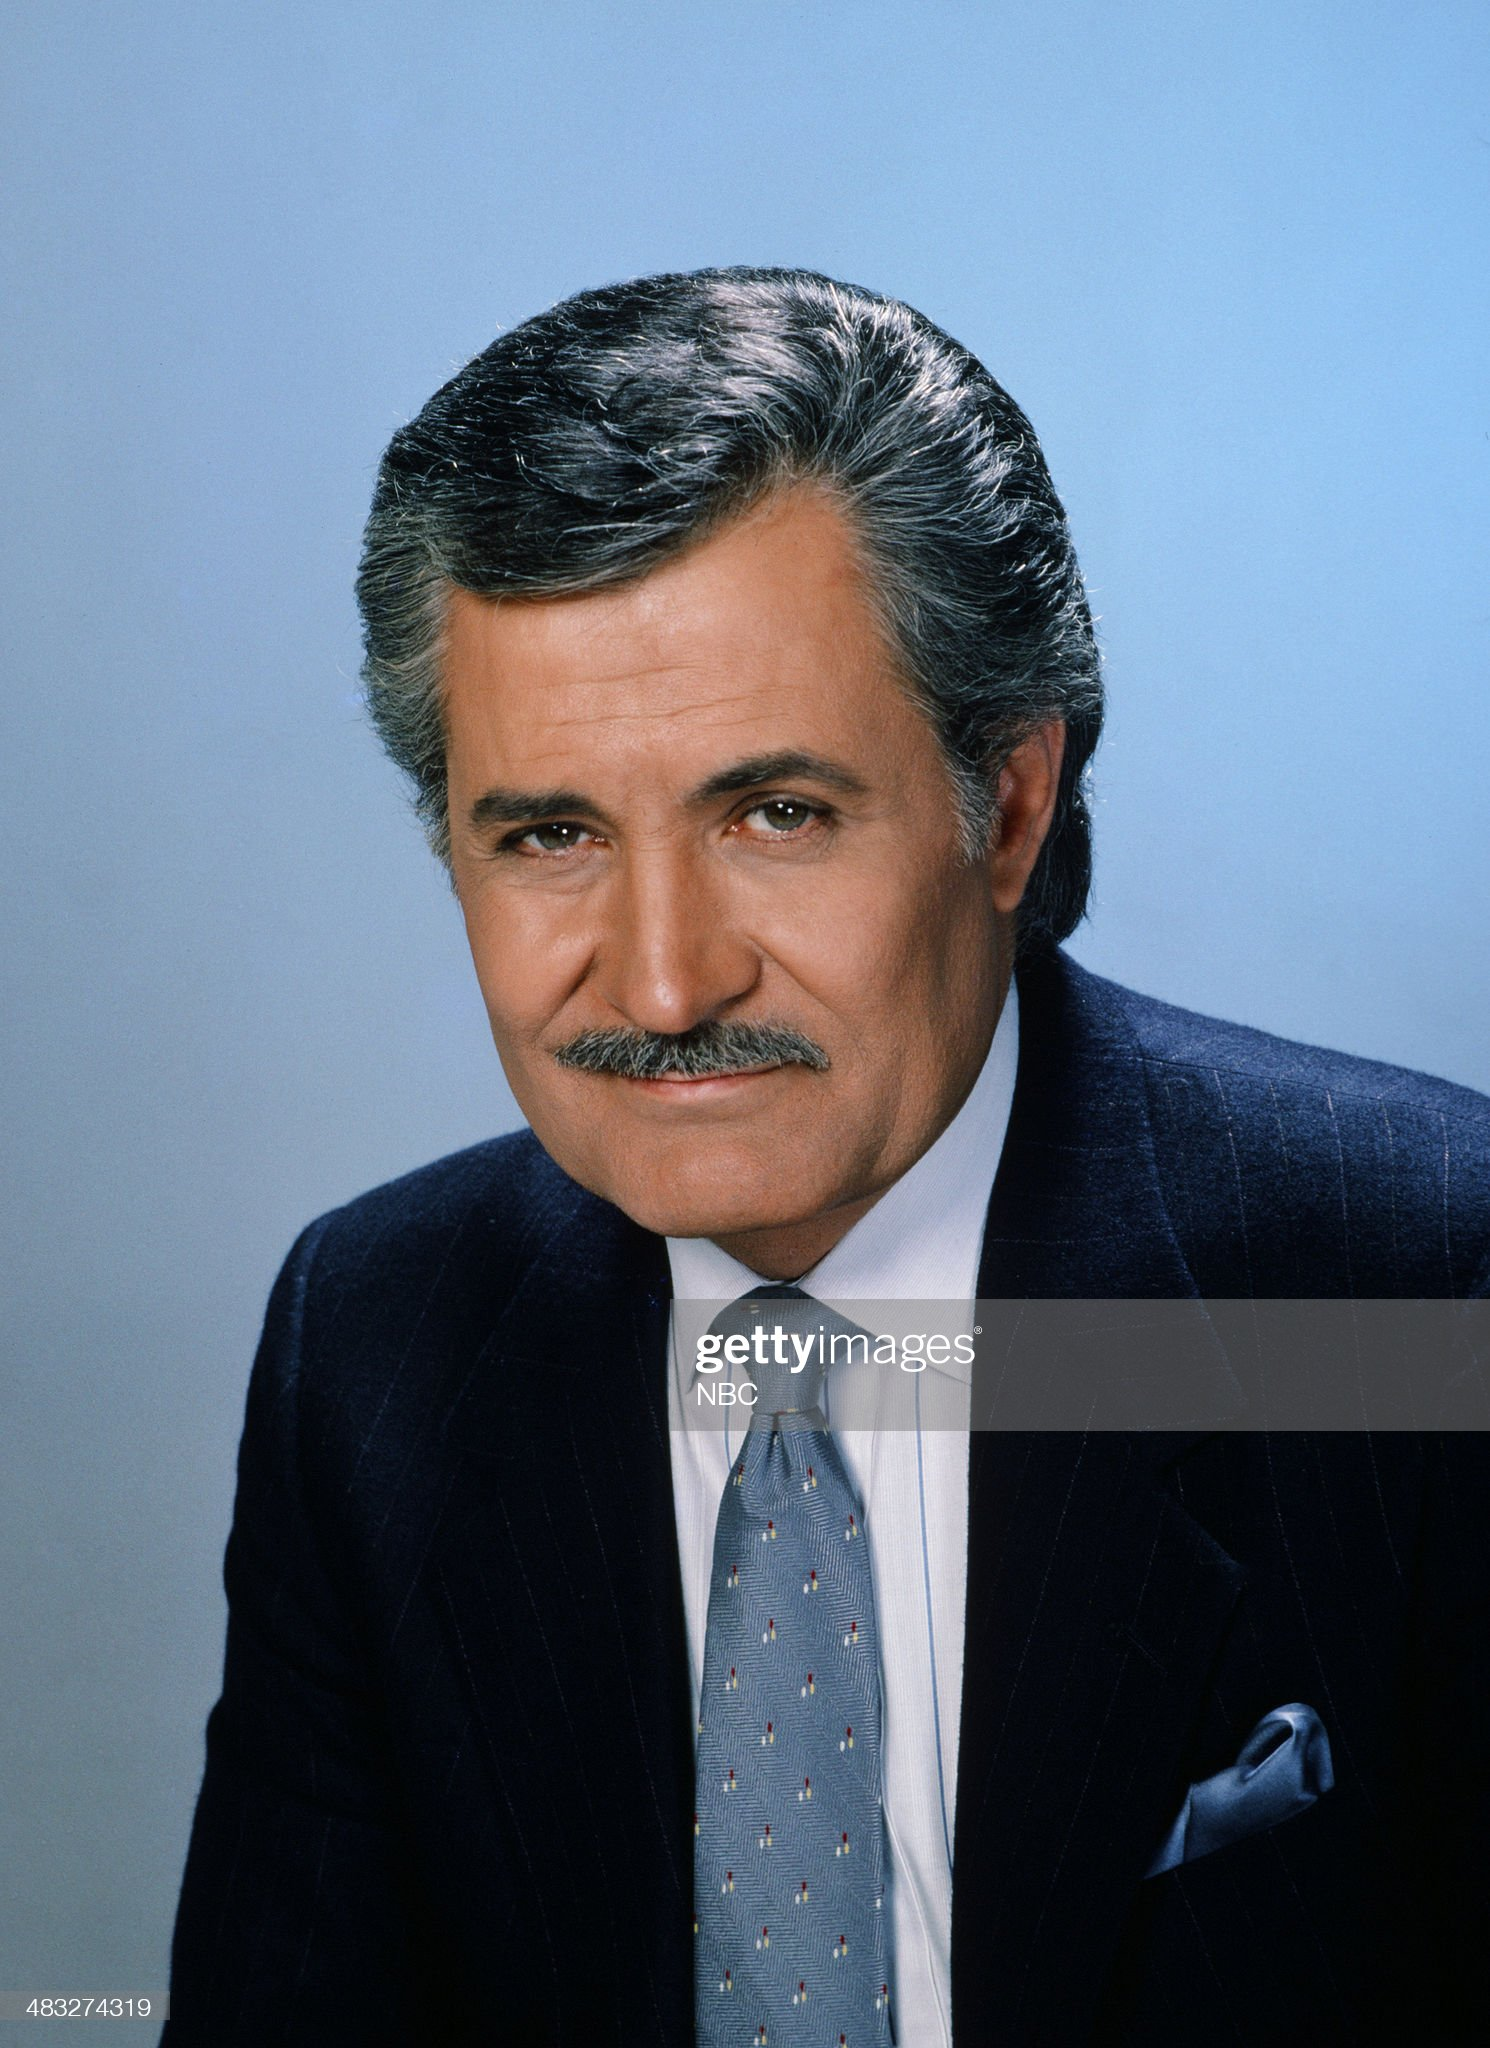 pictured-john-aniston-as-victor-kiriakis-picture-id483274319